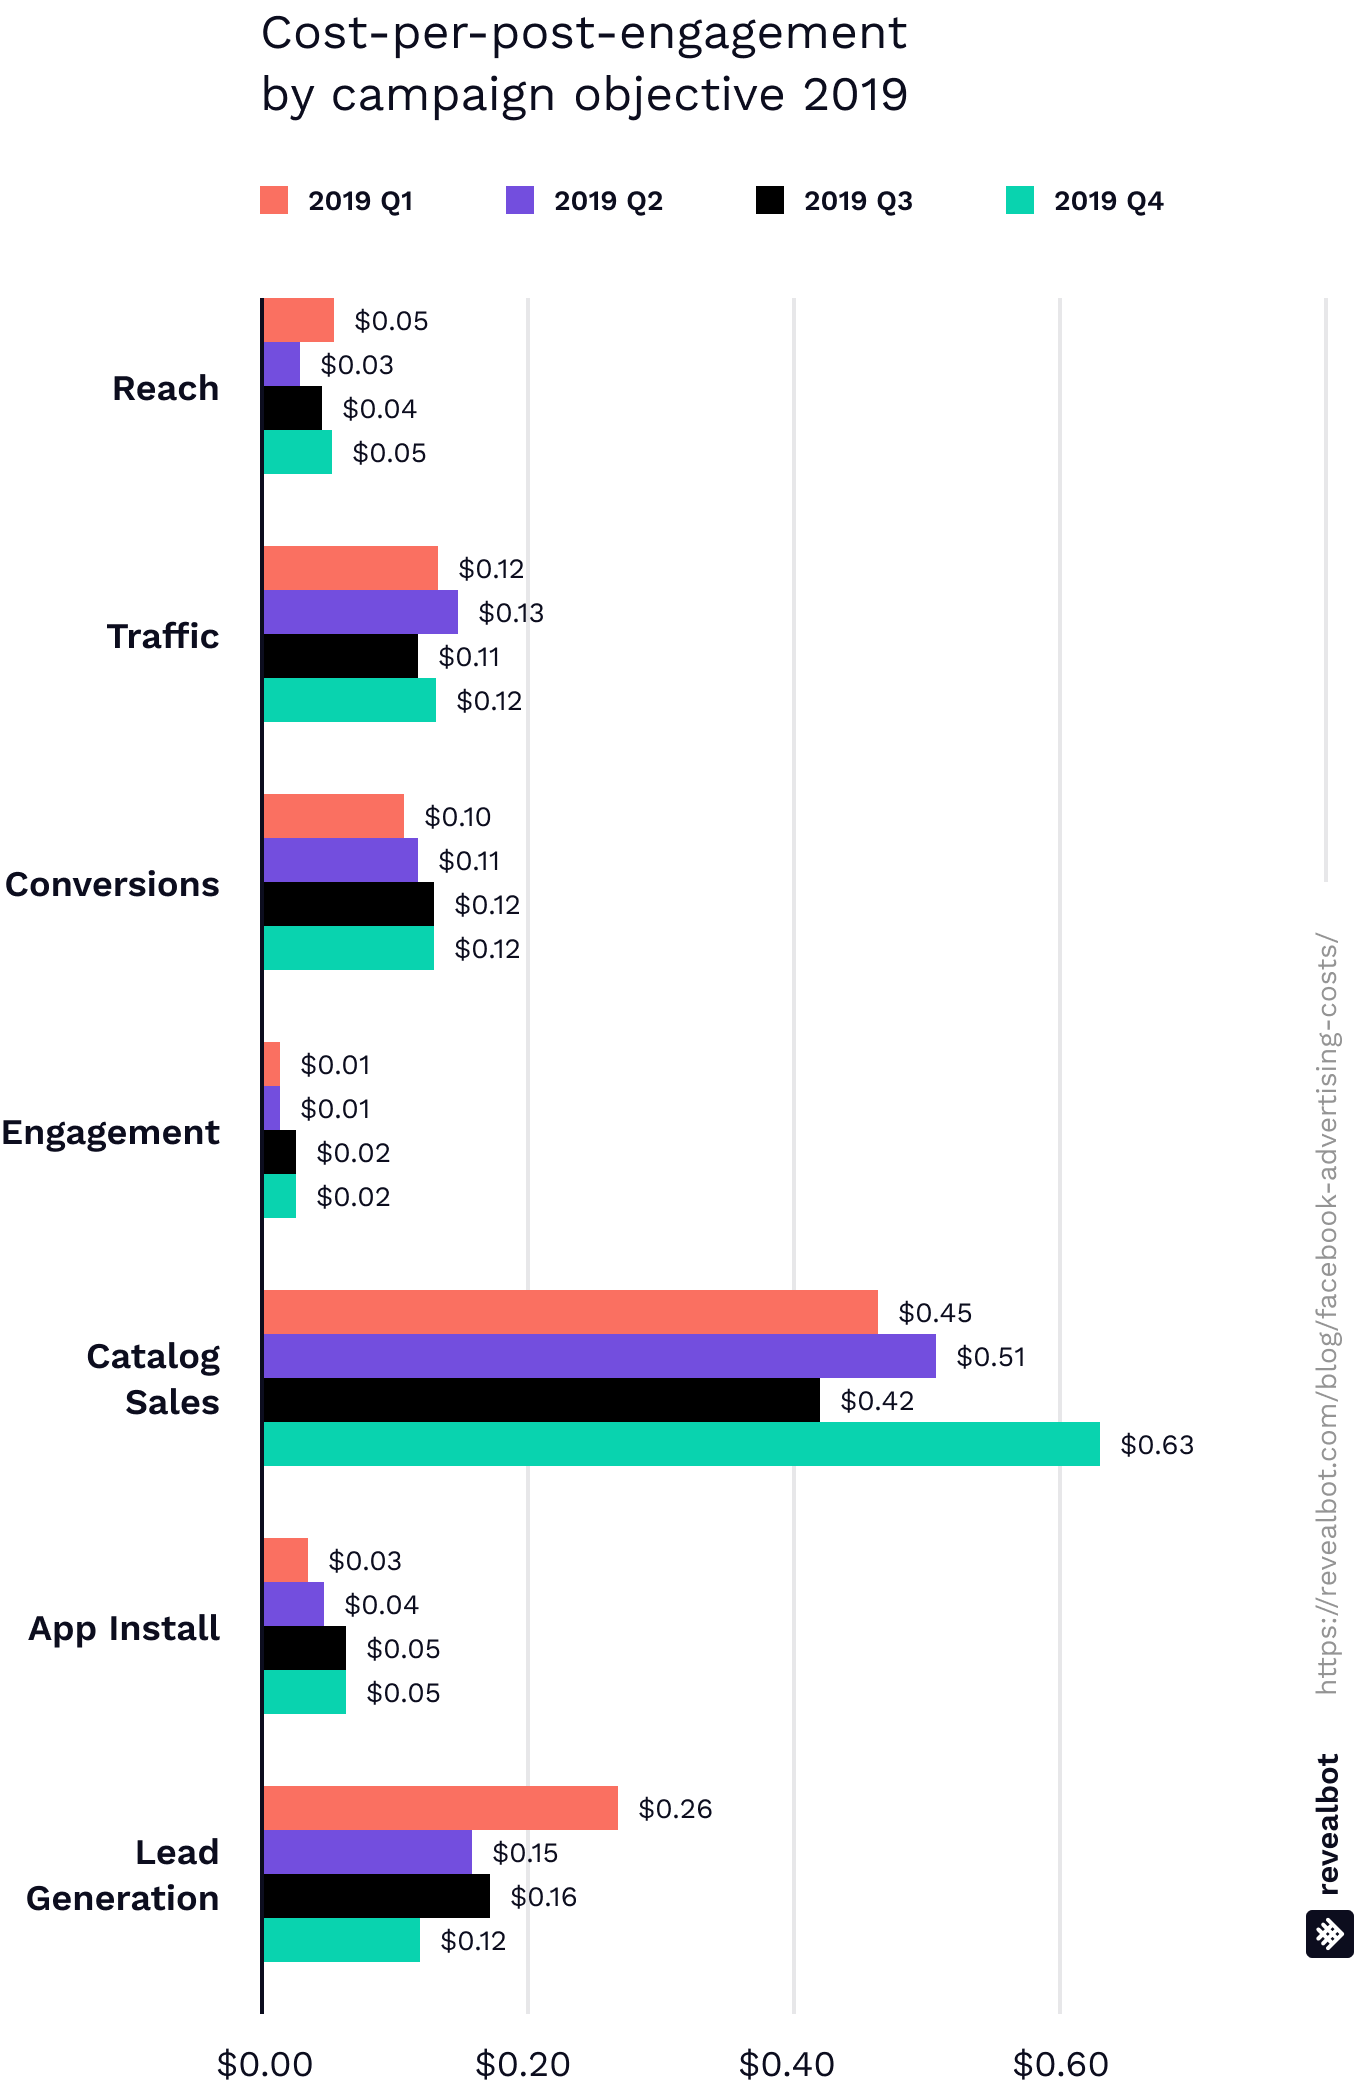 Average cost per post engagement for Facebook ads by campaign objective 2019